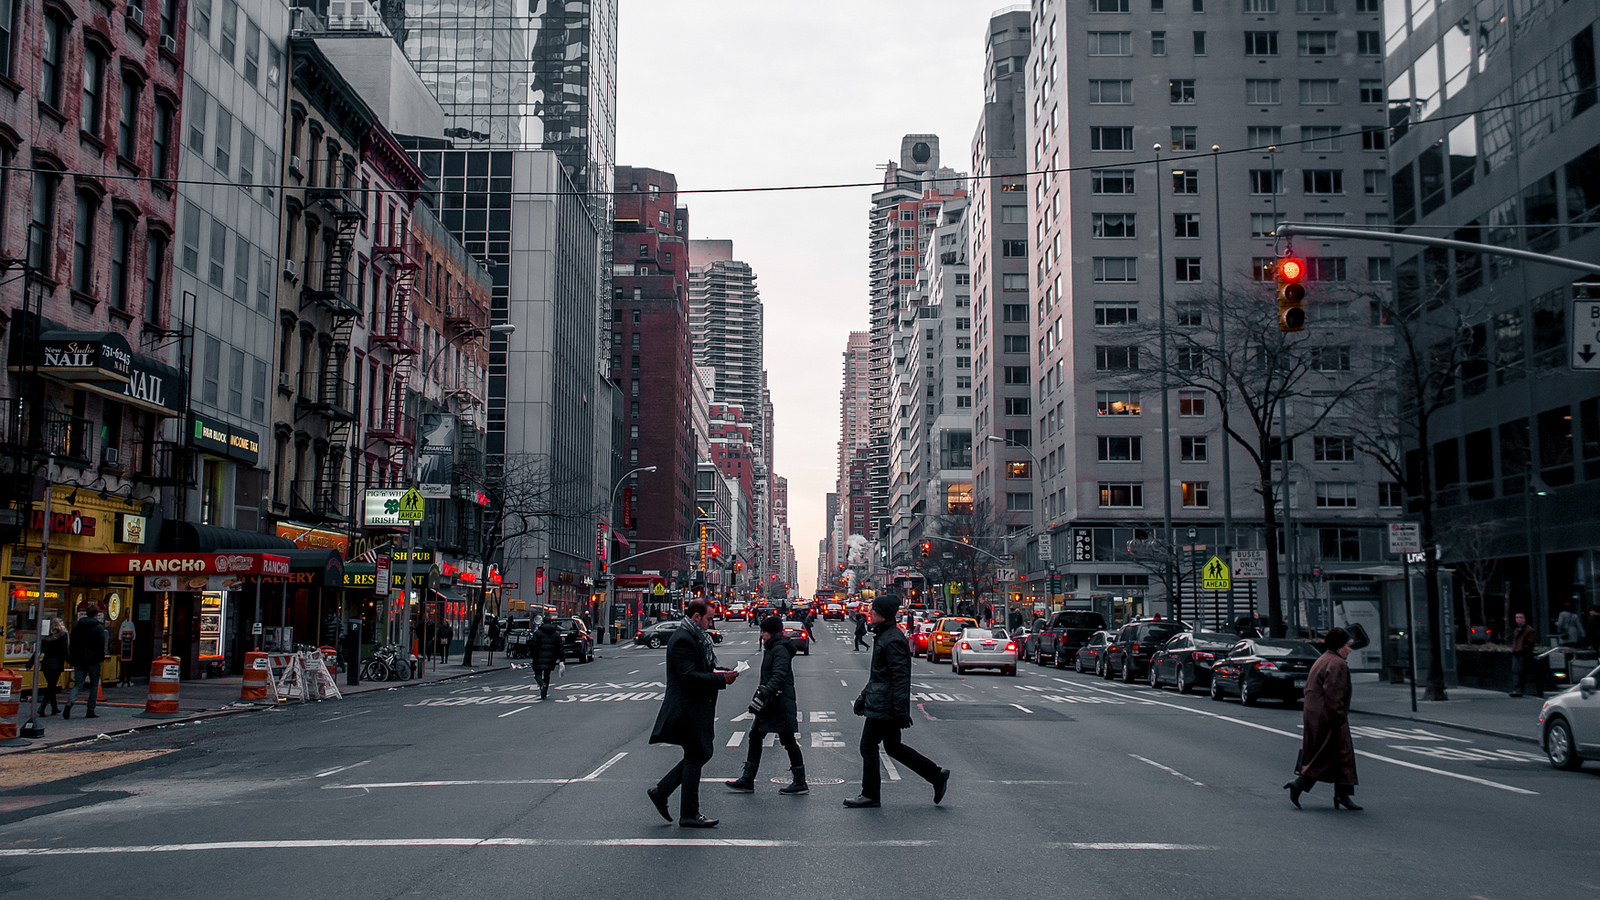 Pedestrians crossing street in New York City